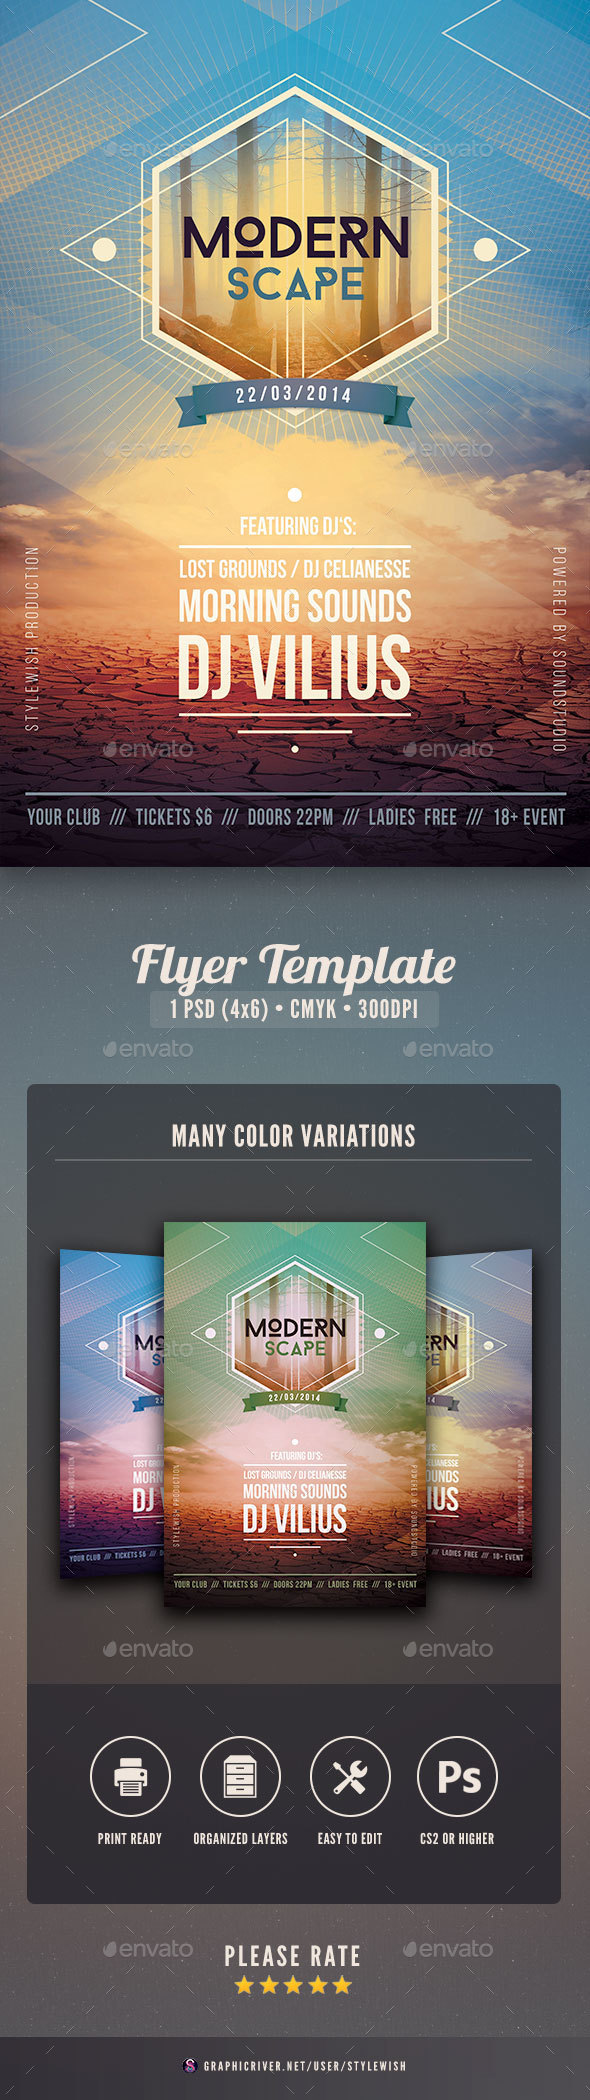 Modern Scape Flyer - Clubs & Parties Events